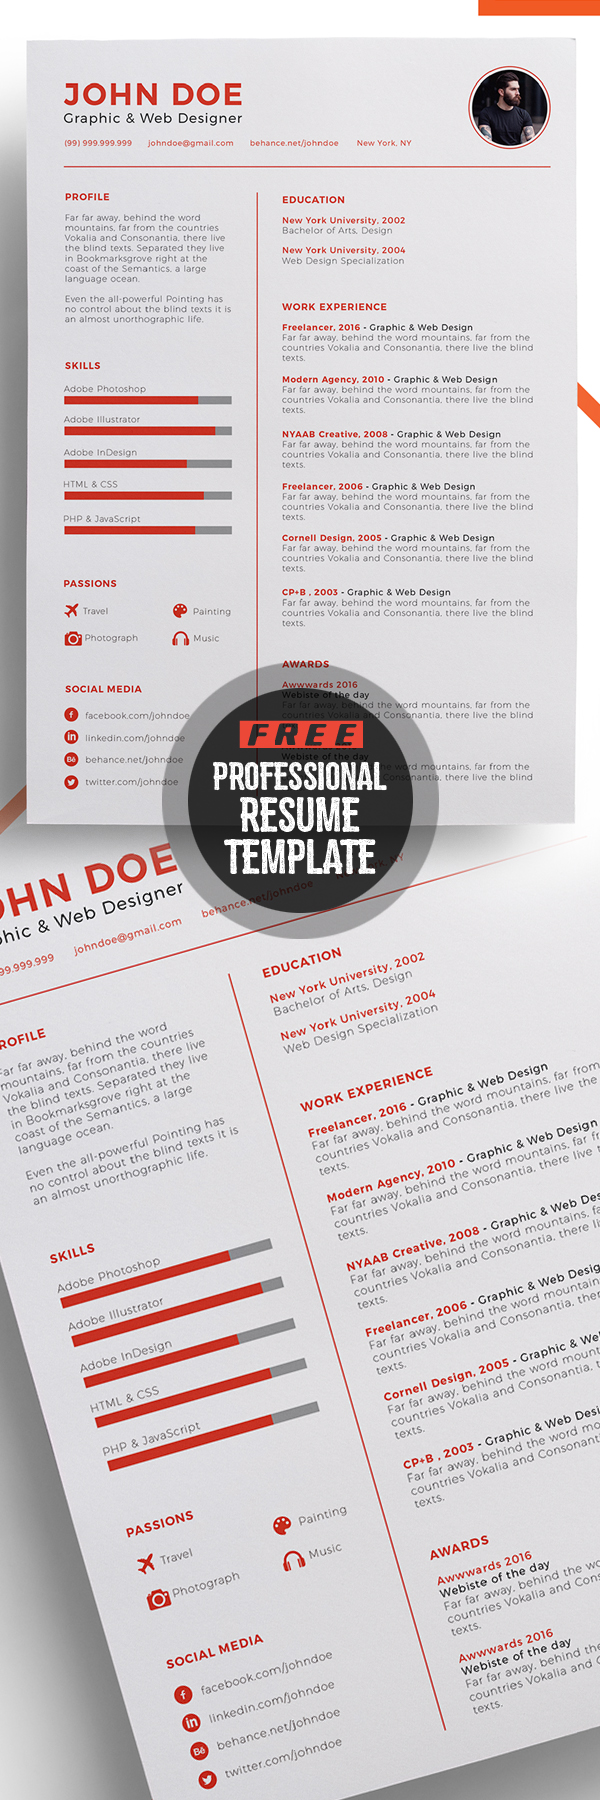 professional free resume template design - Resume Templates For Graphic Designers